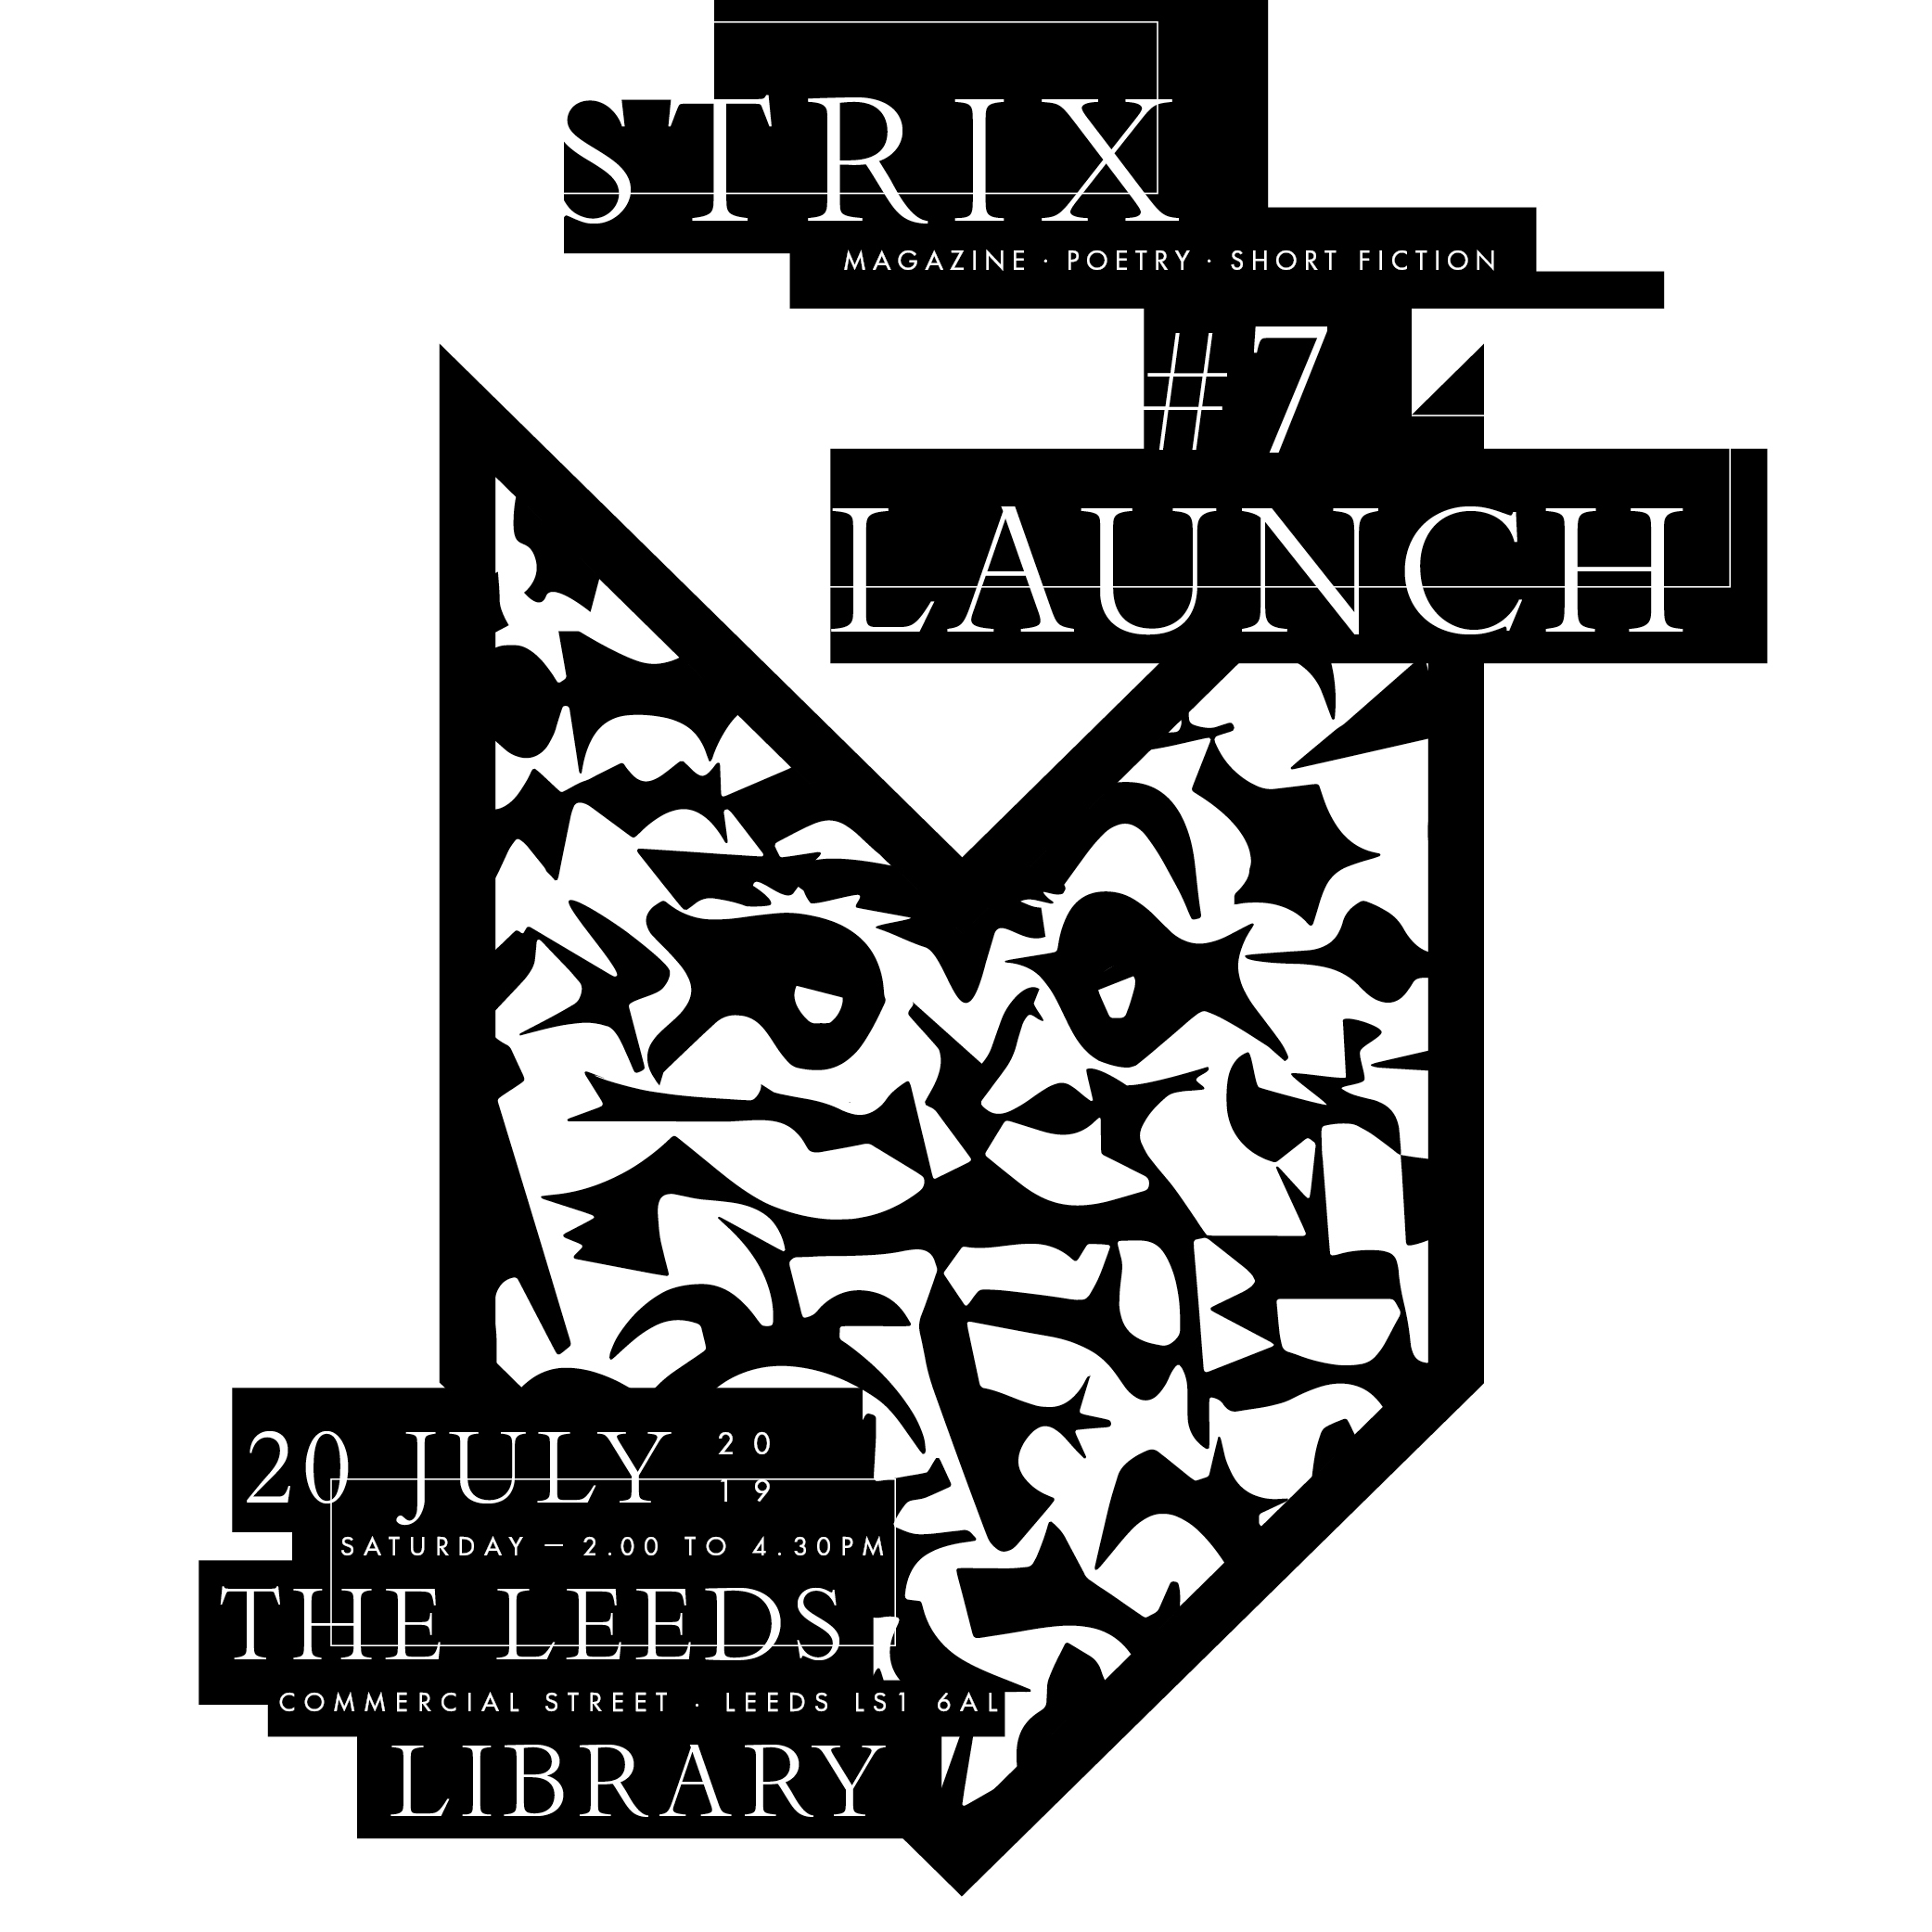 strix-issue-7-web-poster.jpg